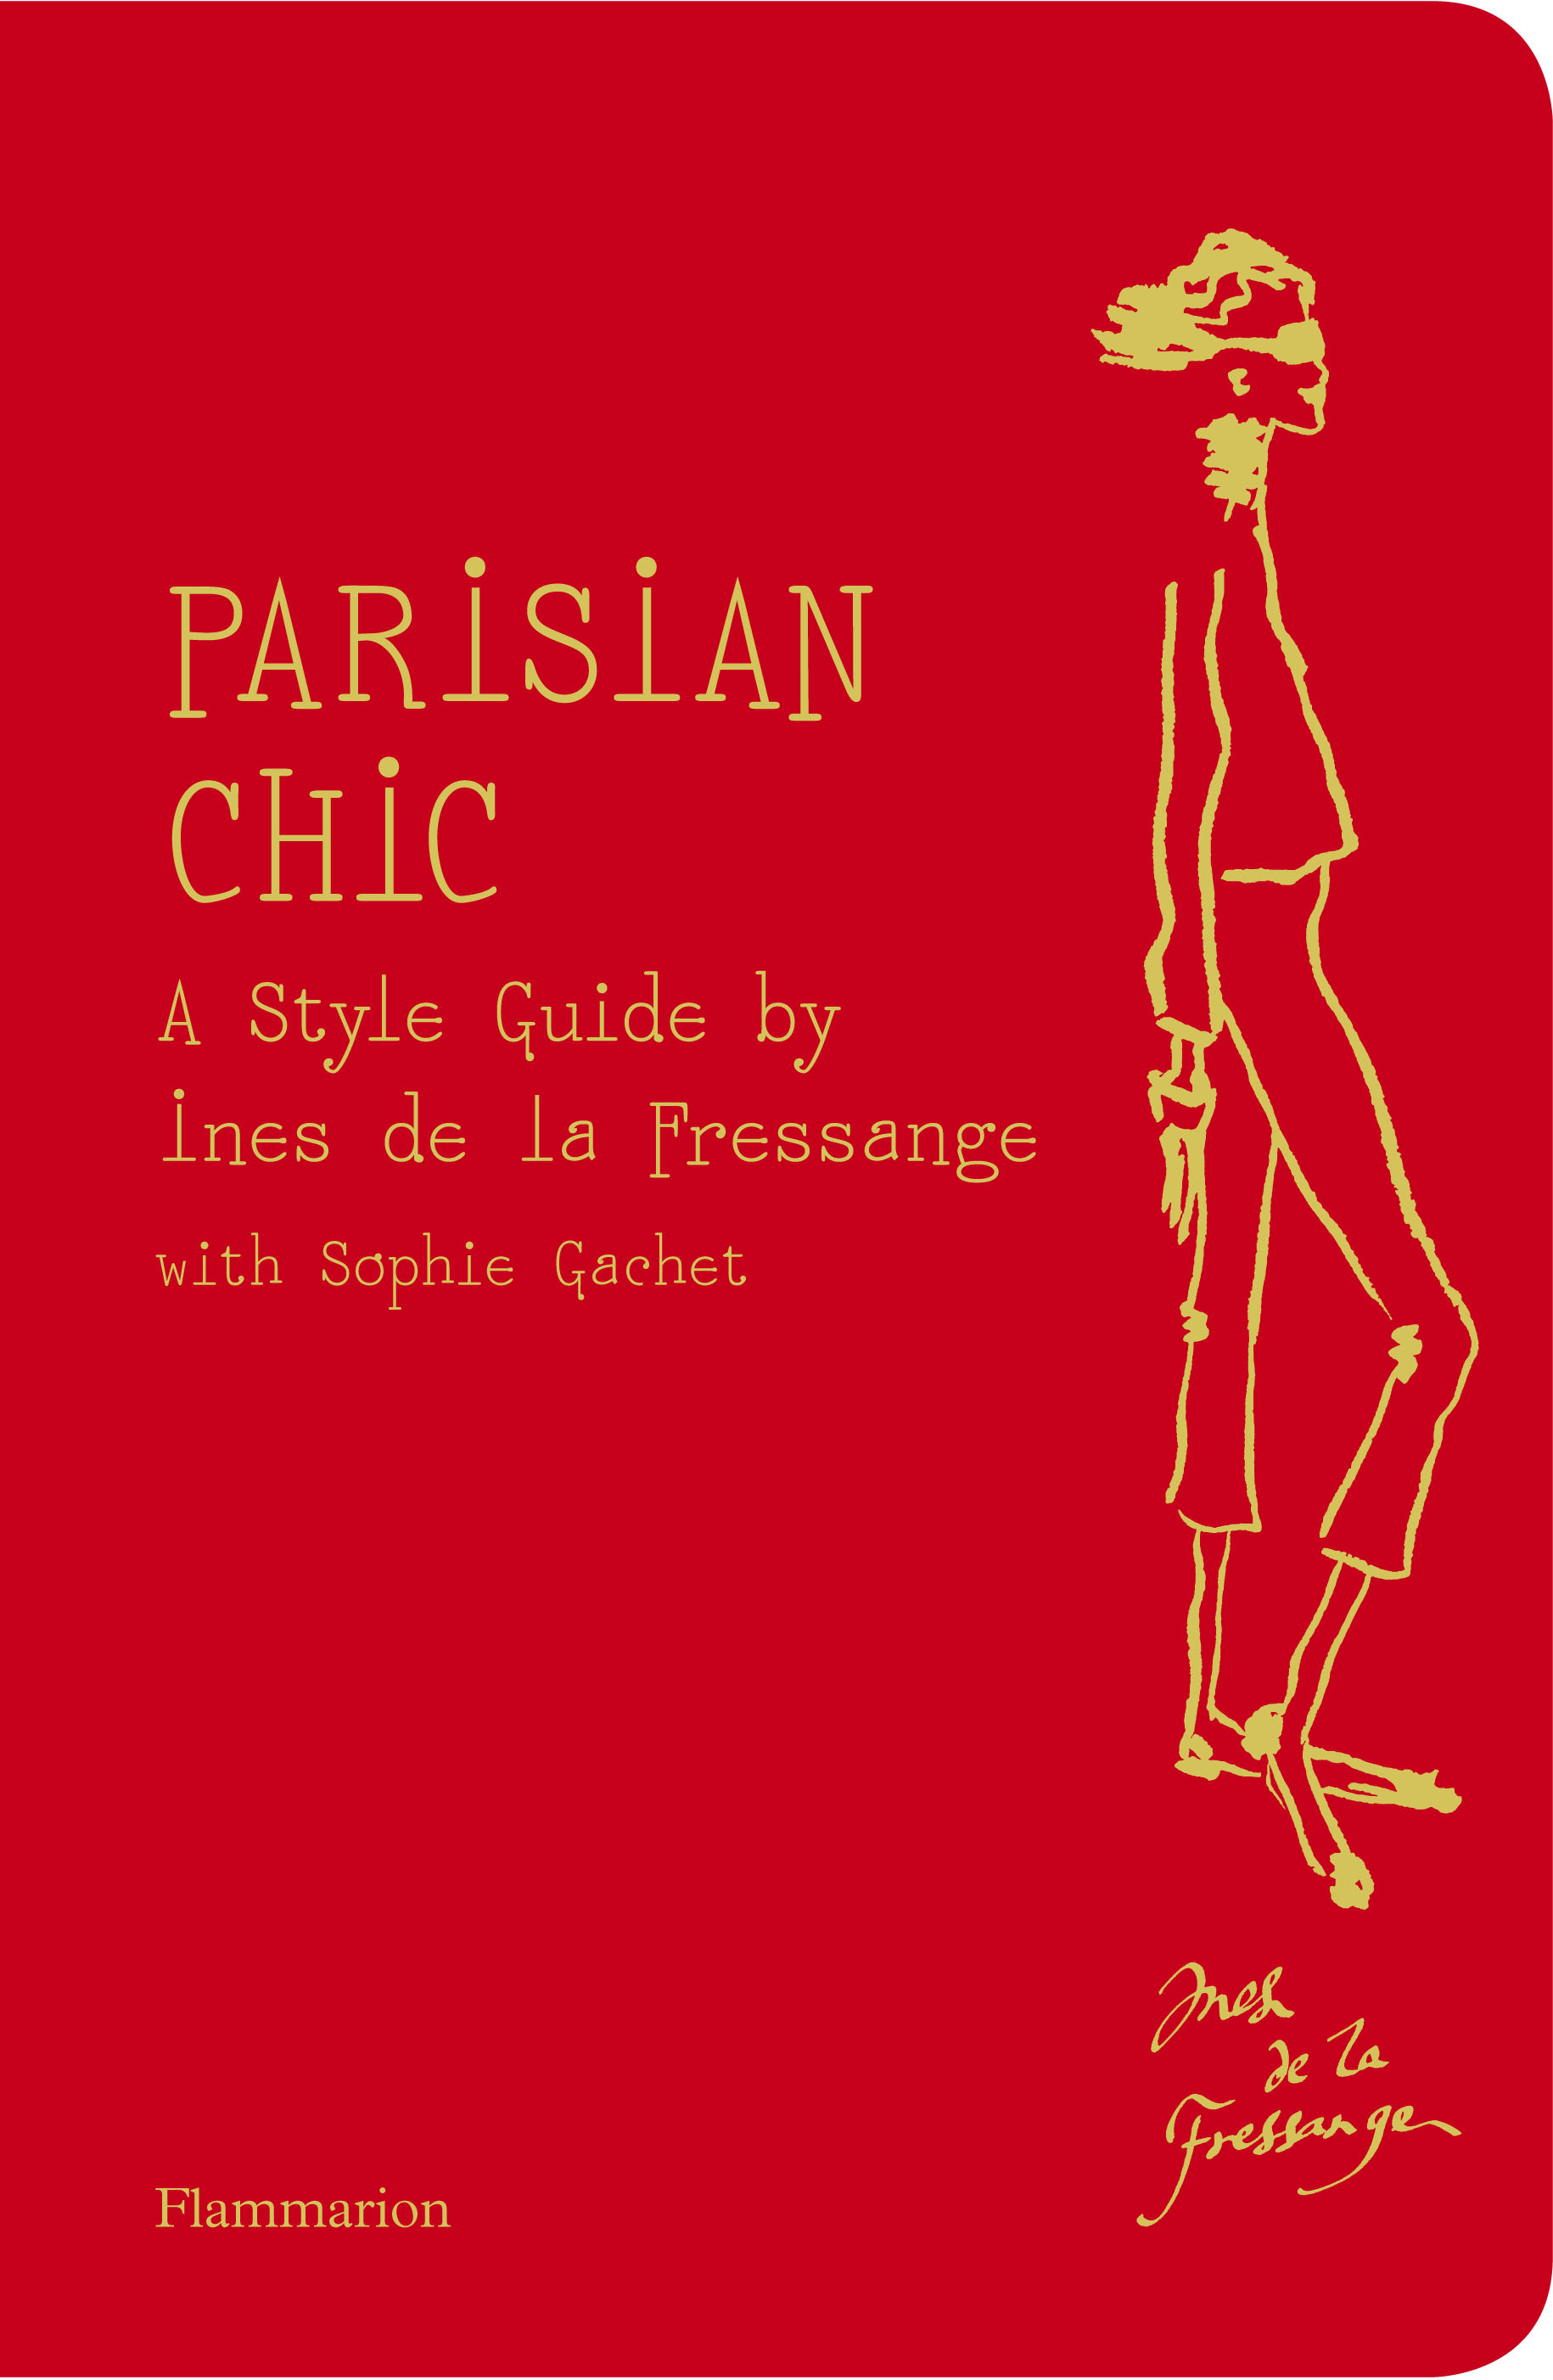 Parisian chic a style guide by in s de la fressange for Minimalist living guide pdf